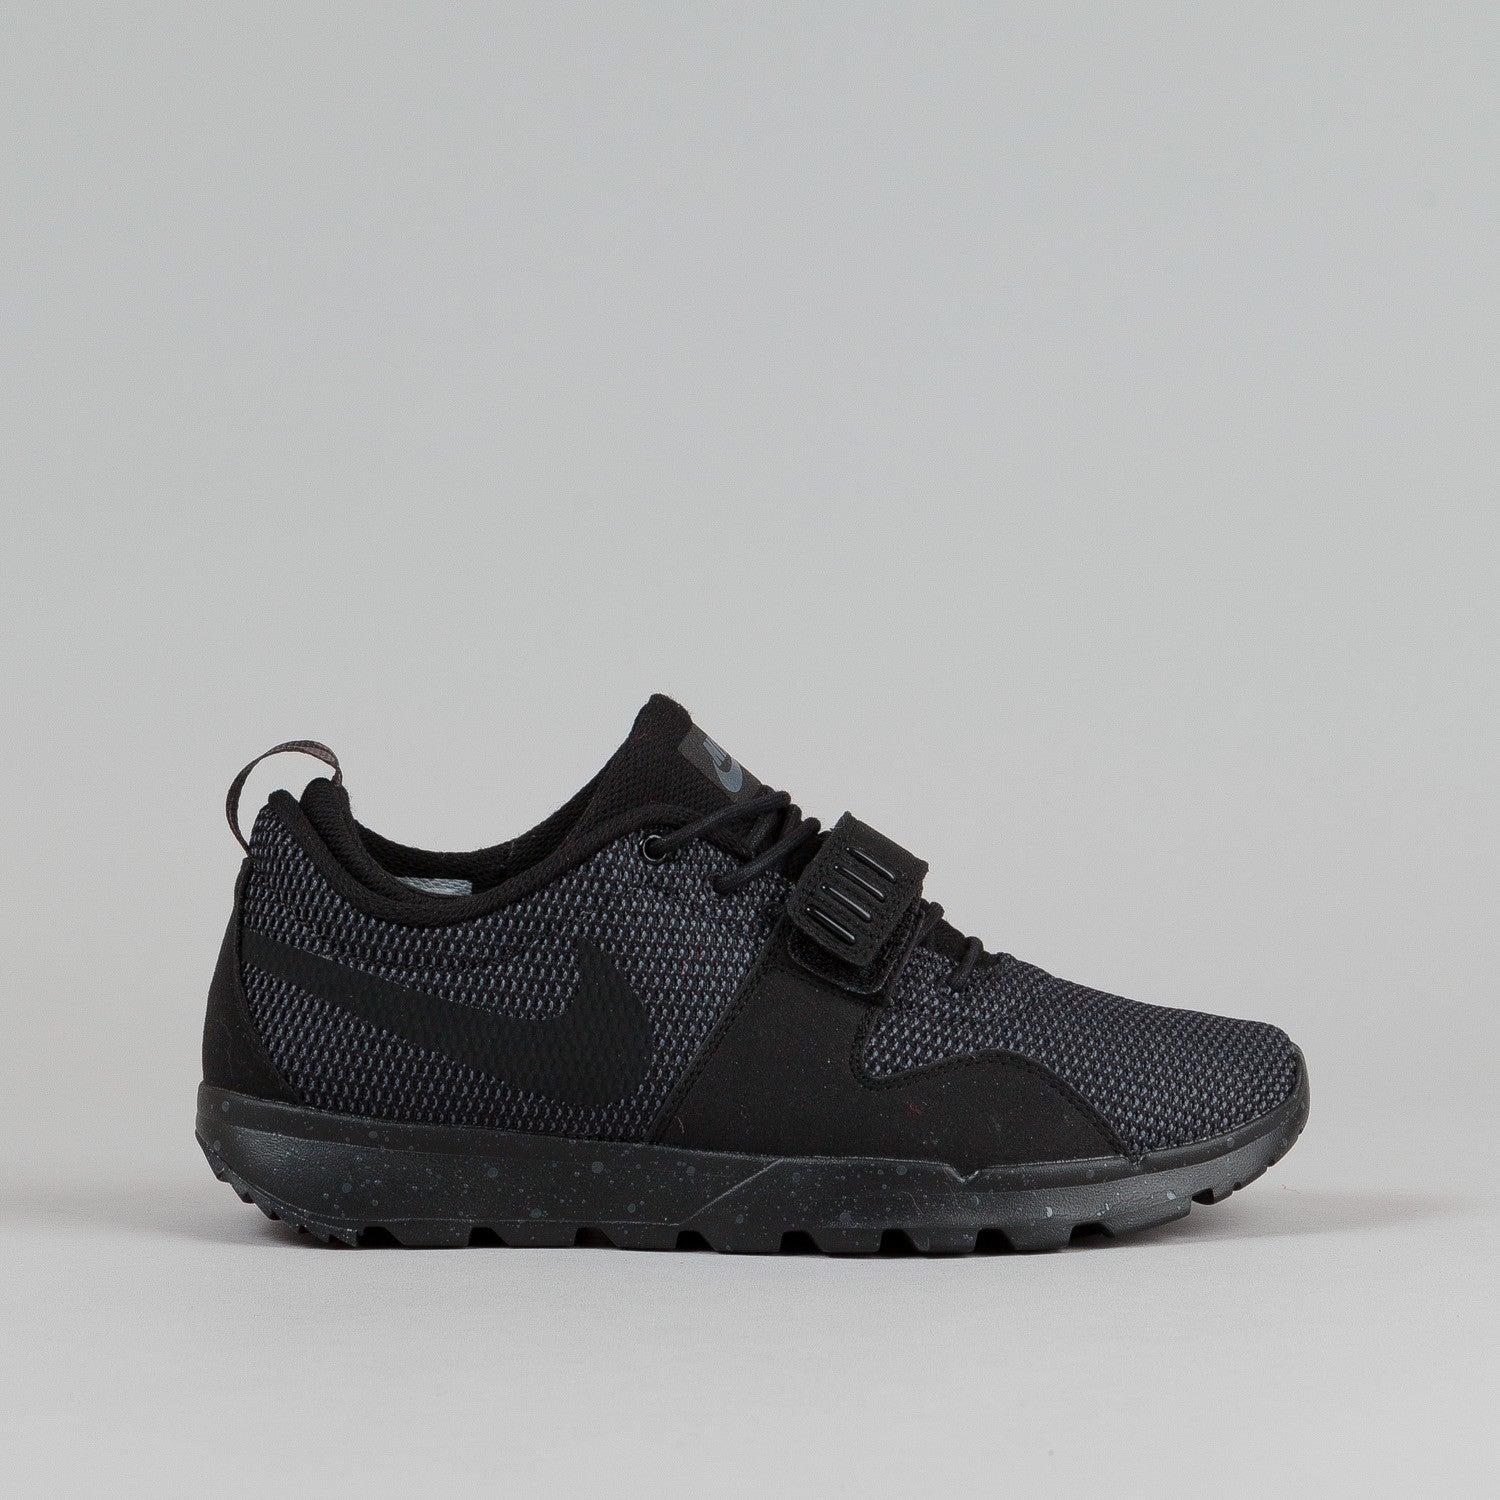 Nike SB Trainerendor Shoes Black / Black